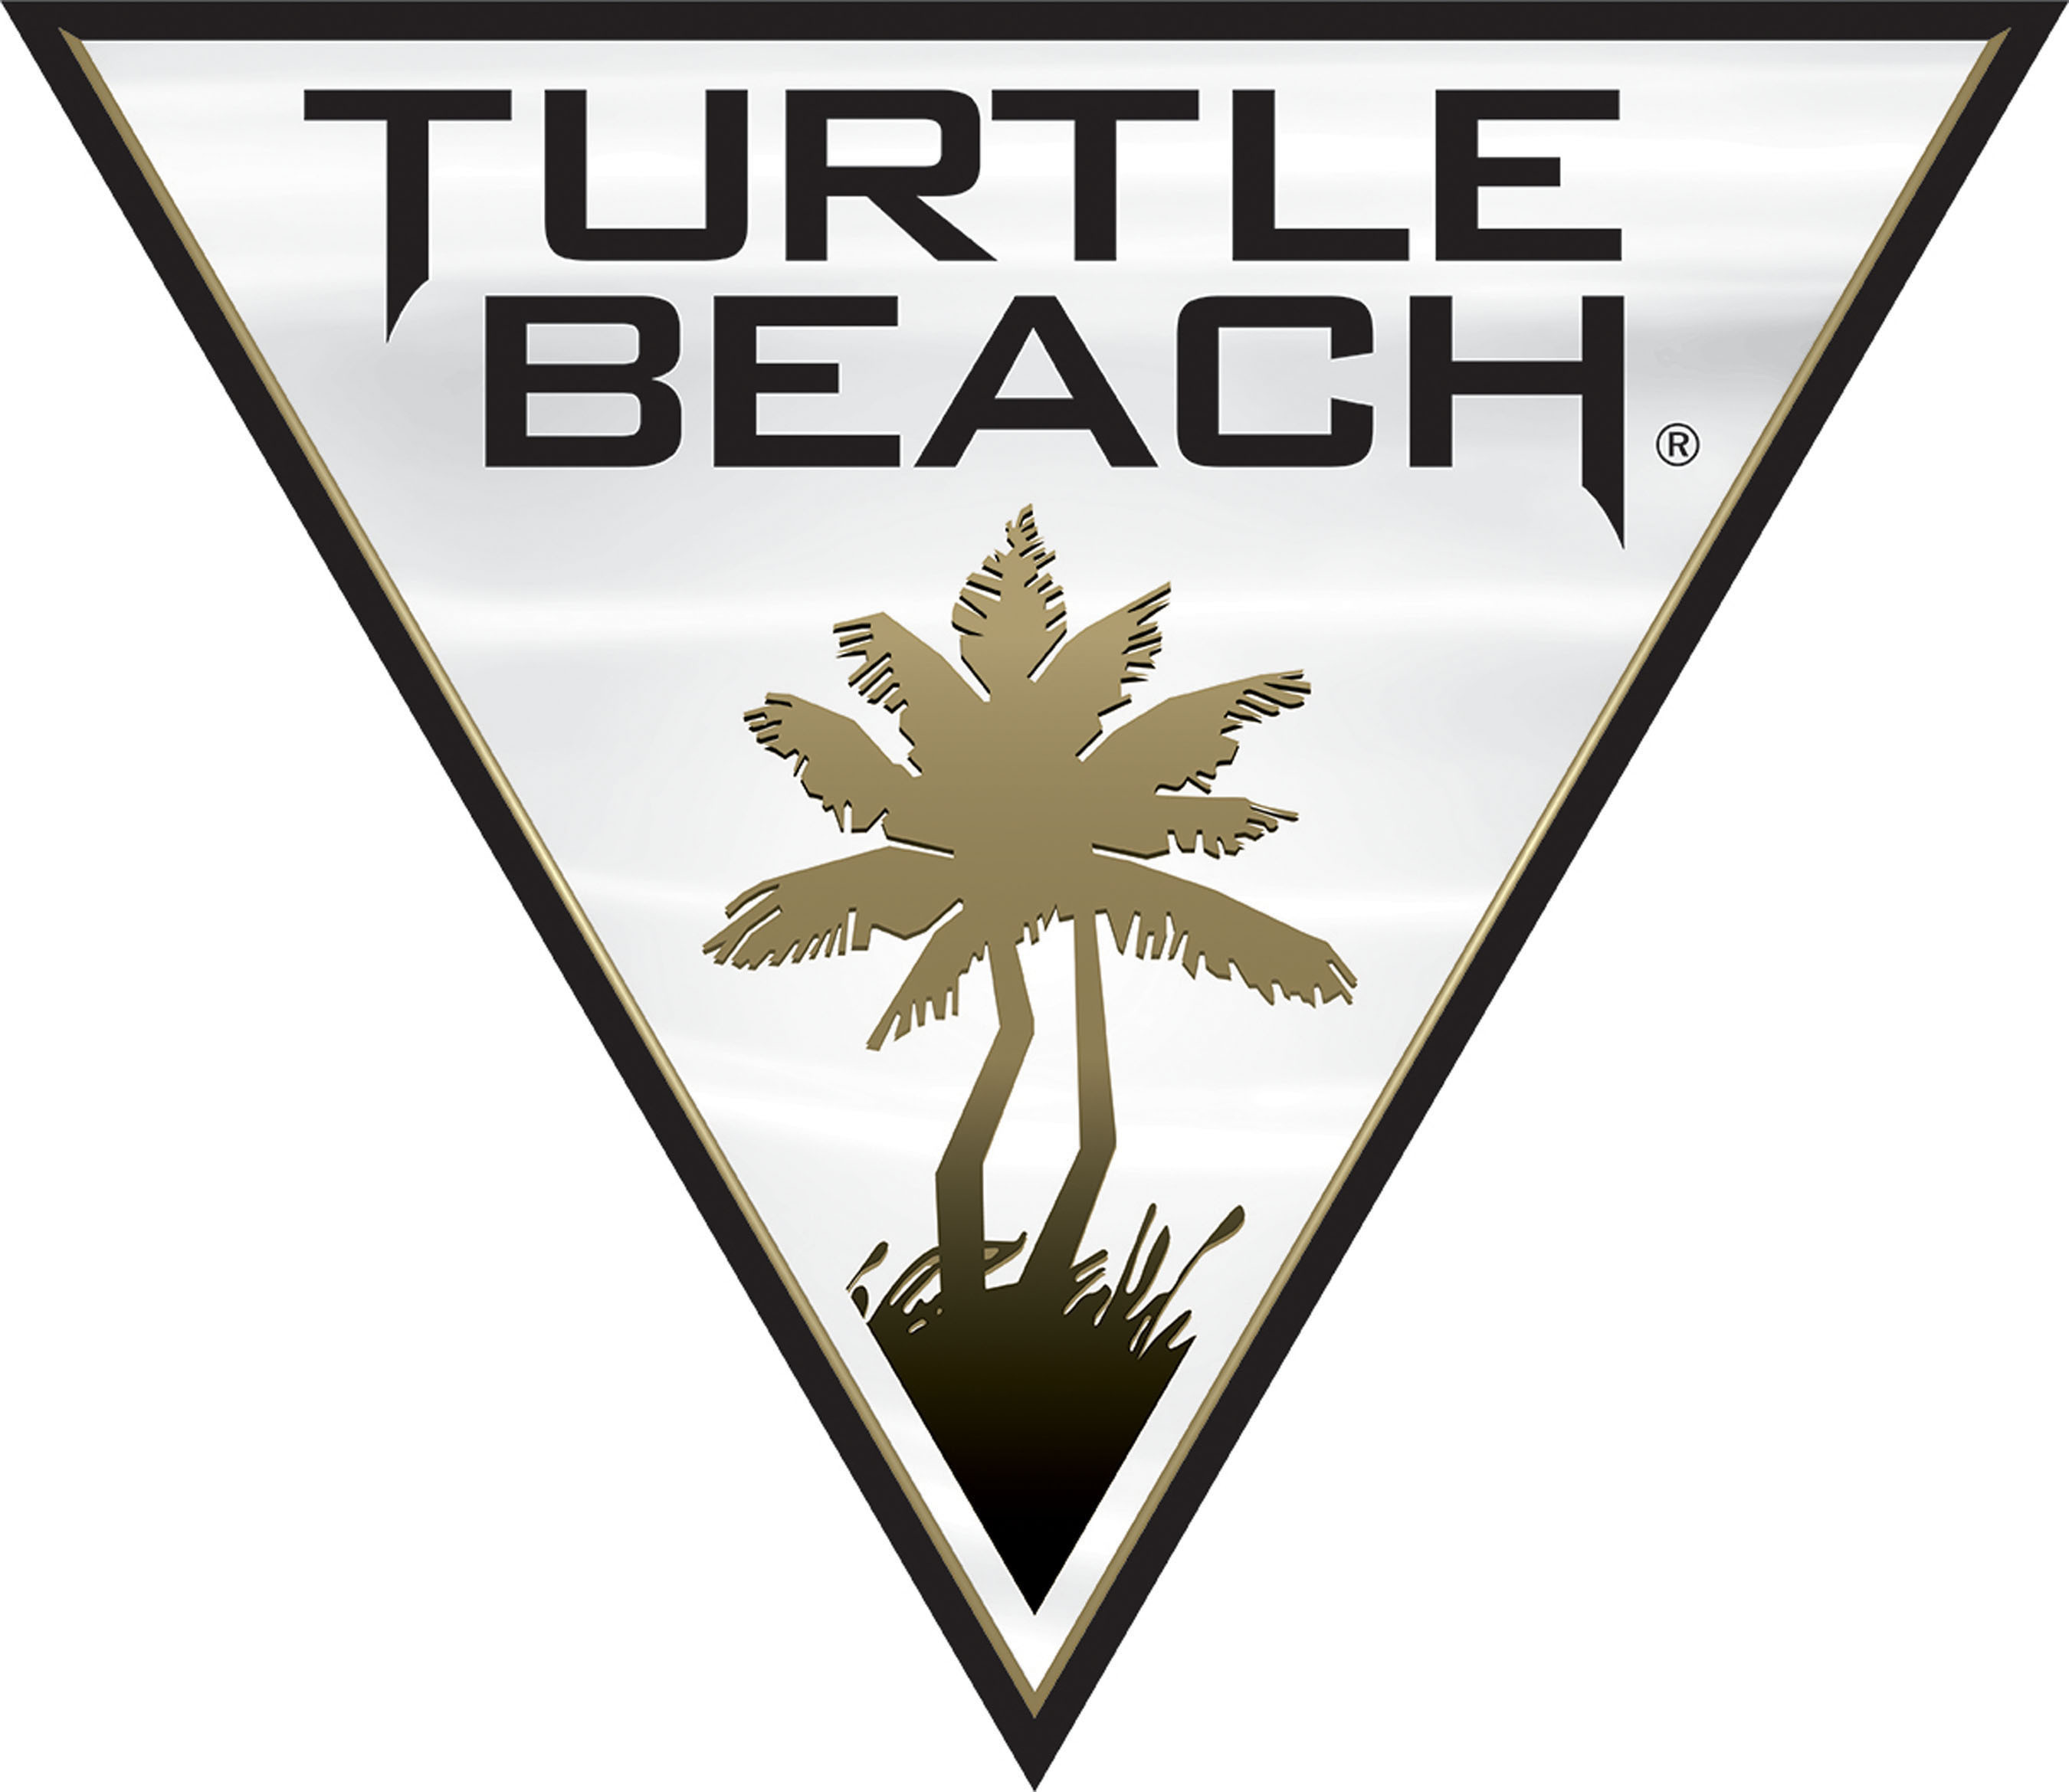 Turtle Beach Corporation's New PC Gaming Accessories Now Available At Retail